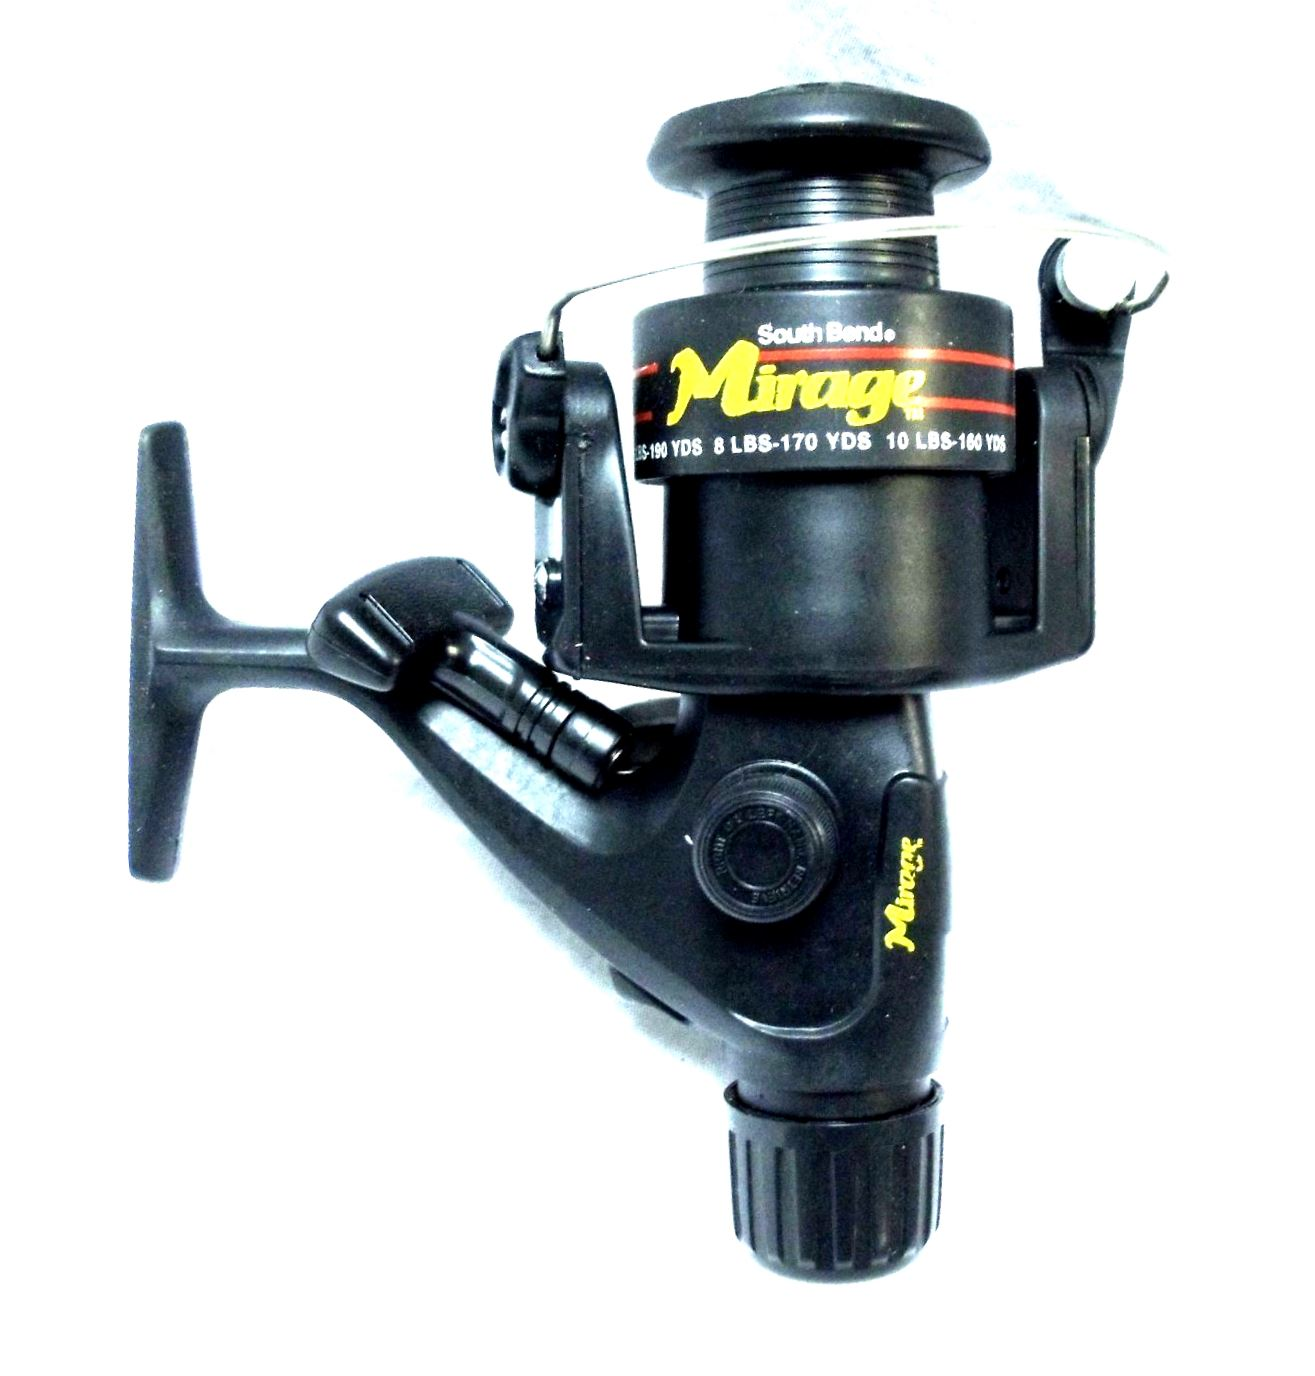 South Bend Mirage 431a Open Face Fishing Spining Cast